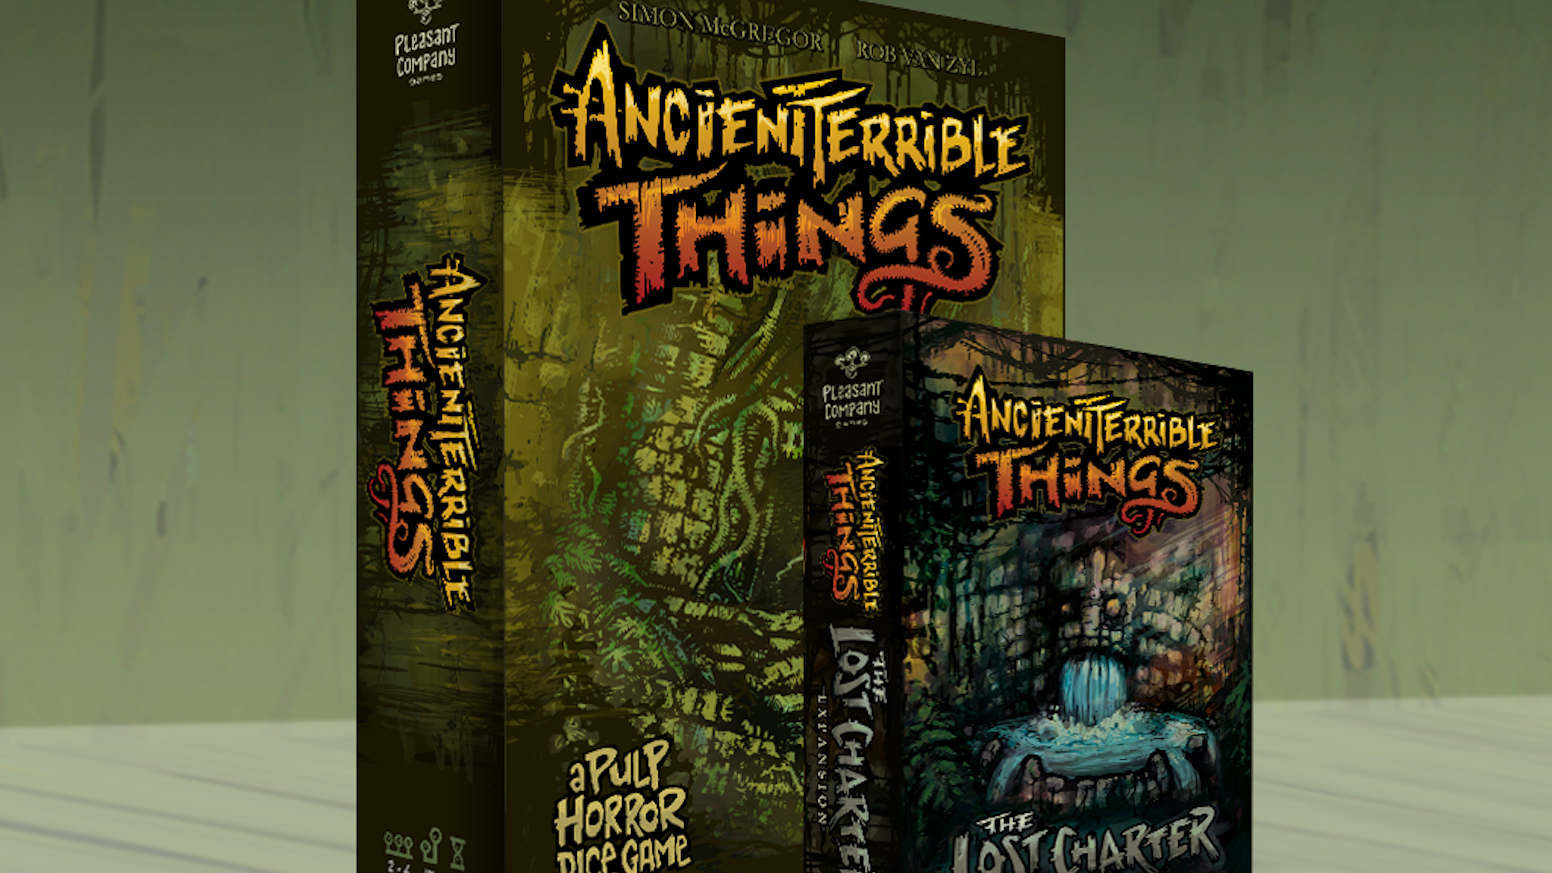 A brand new expansion for the pulp horror dice-chucker, Ancient Terrible Things + 2nd edition of the base game. Something has awoken!